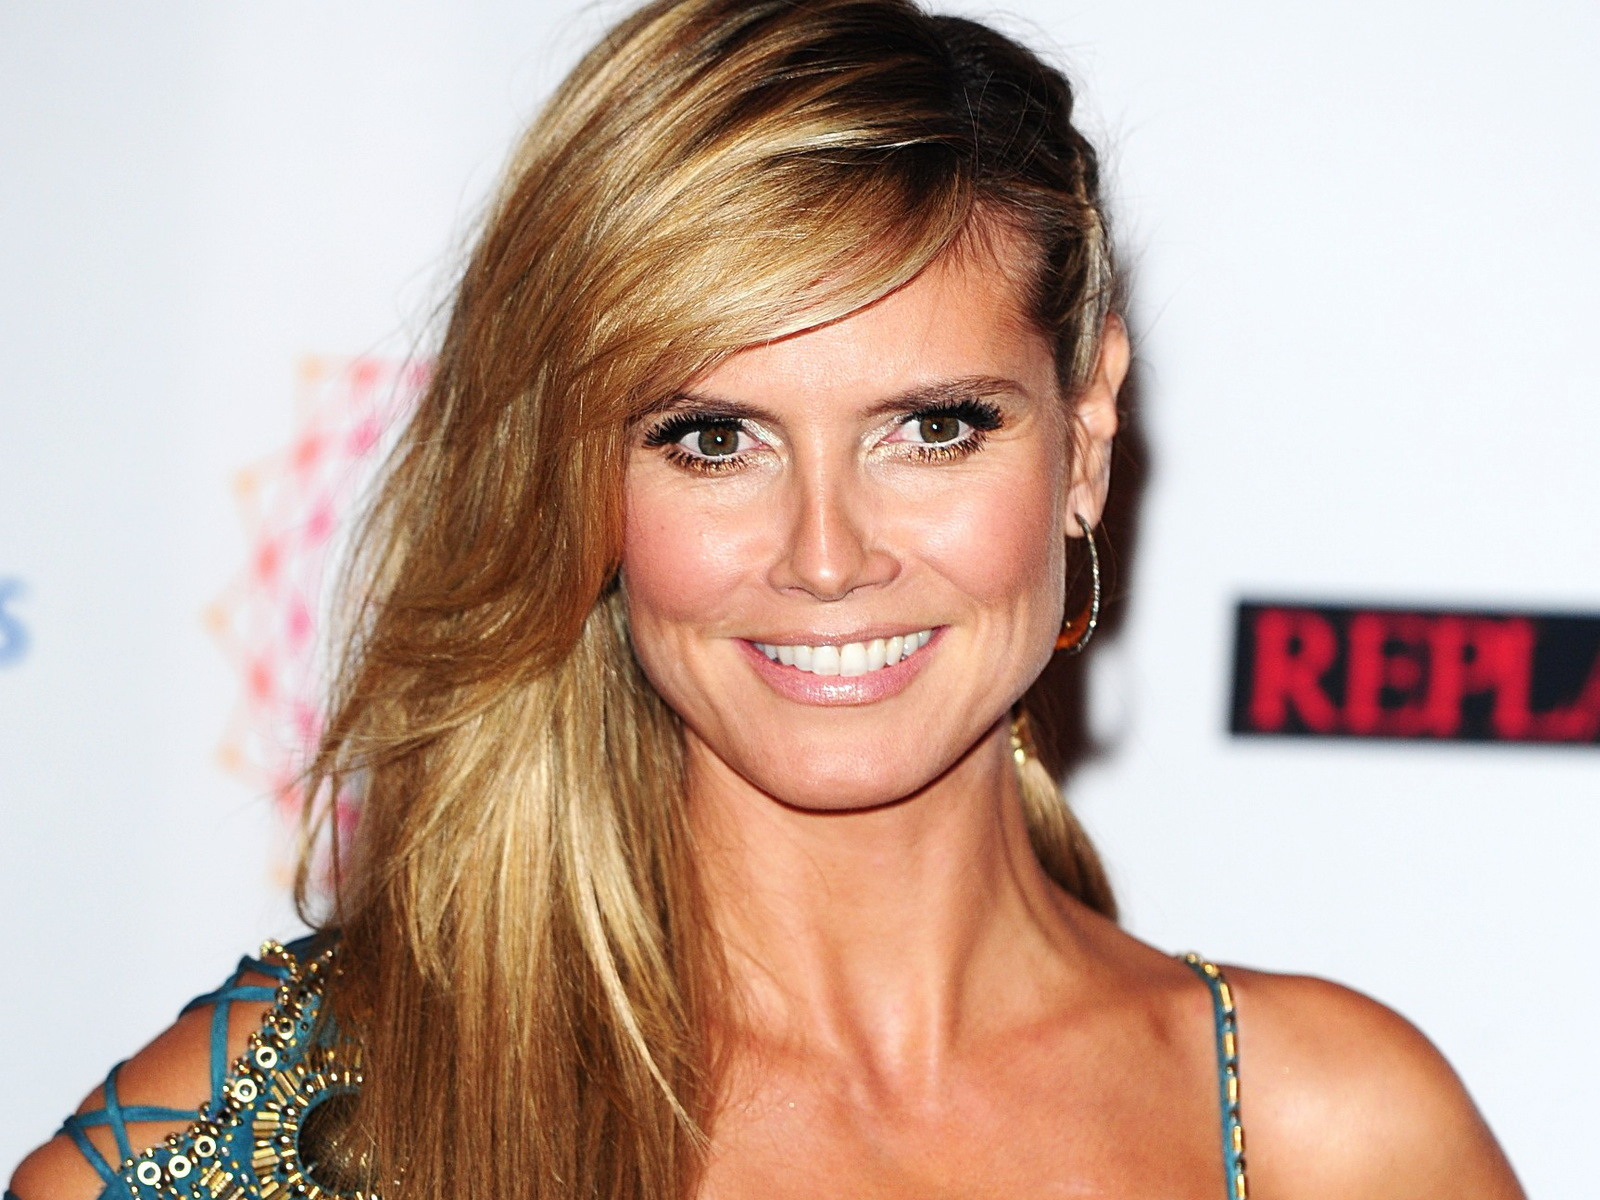 Heidi Klum Hair Styles: 23 Celebrity Bang Hairstyles